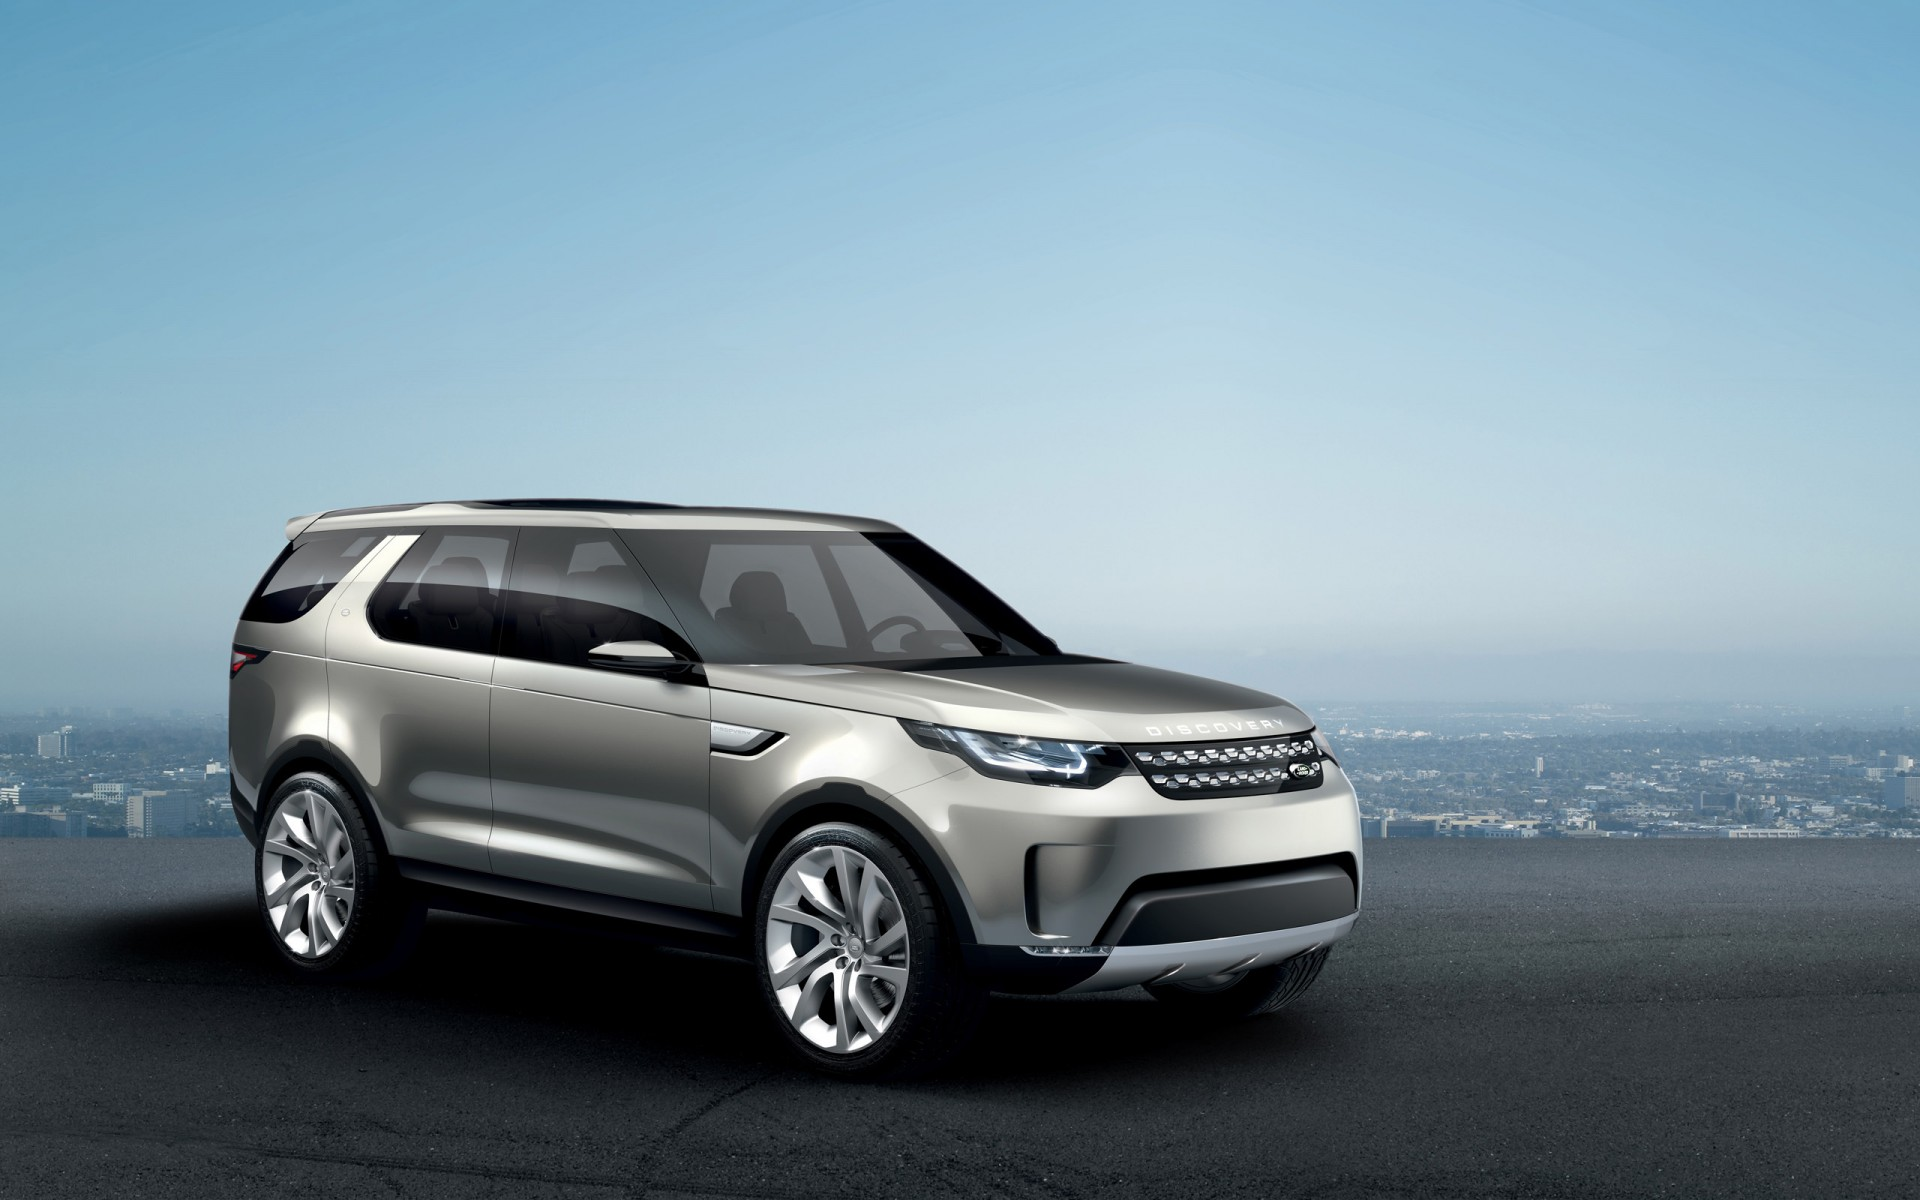 2014 Land Rover Discovery Vision Concept Wallpaper | HD ...